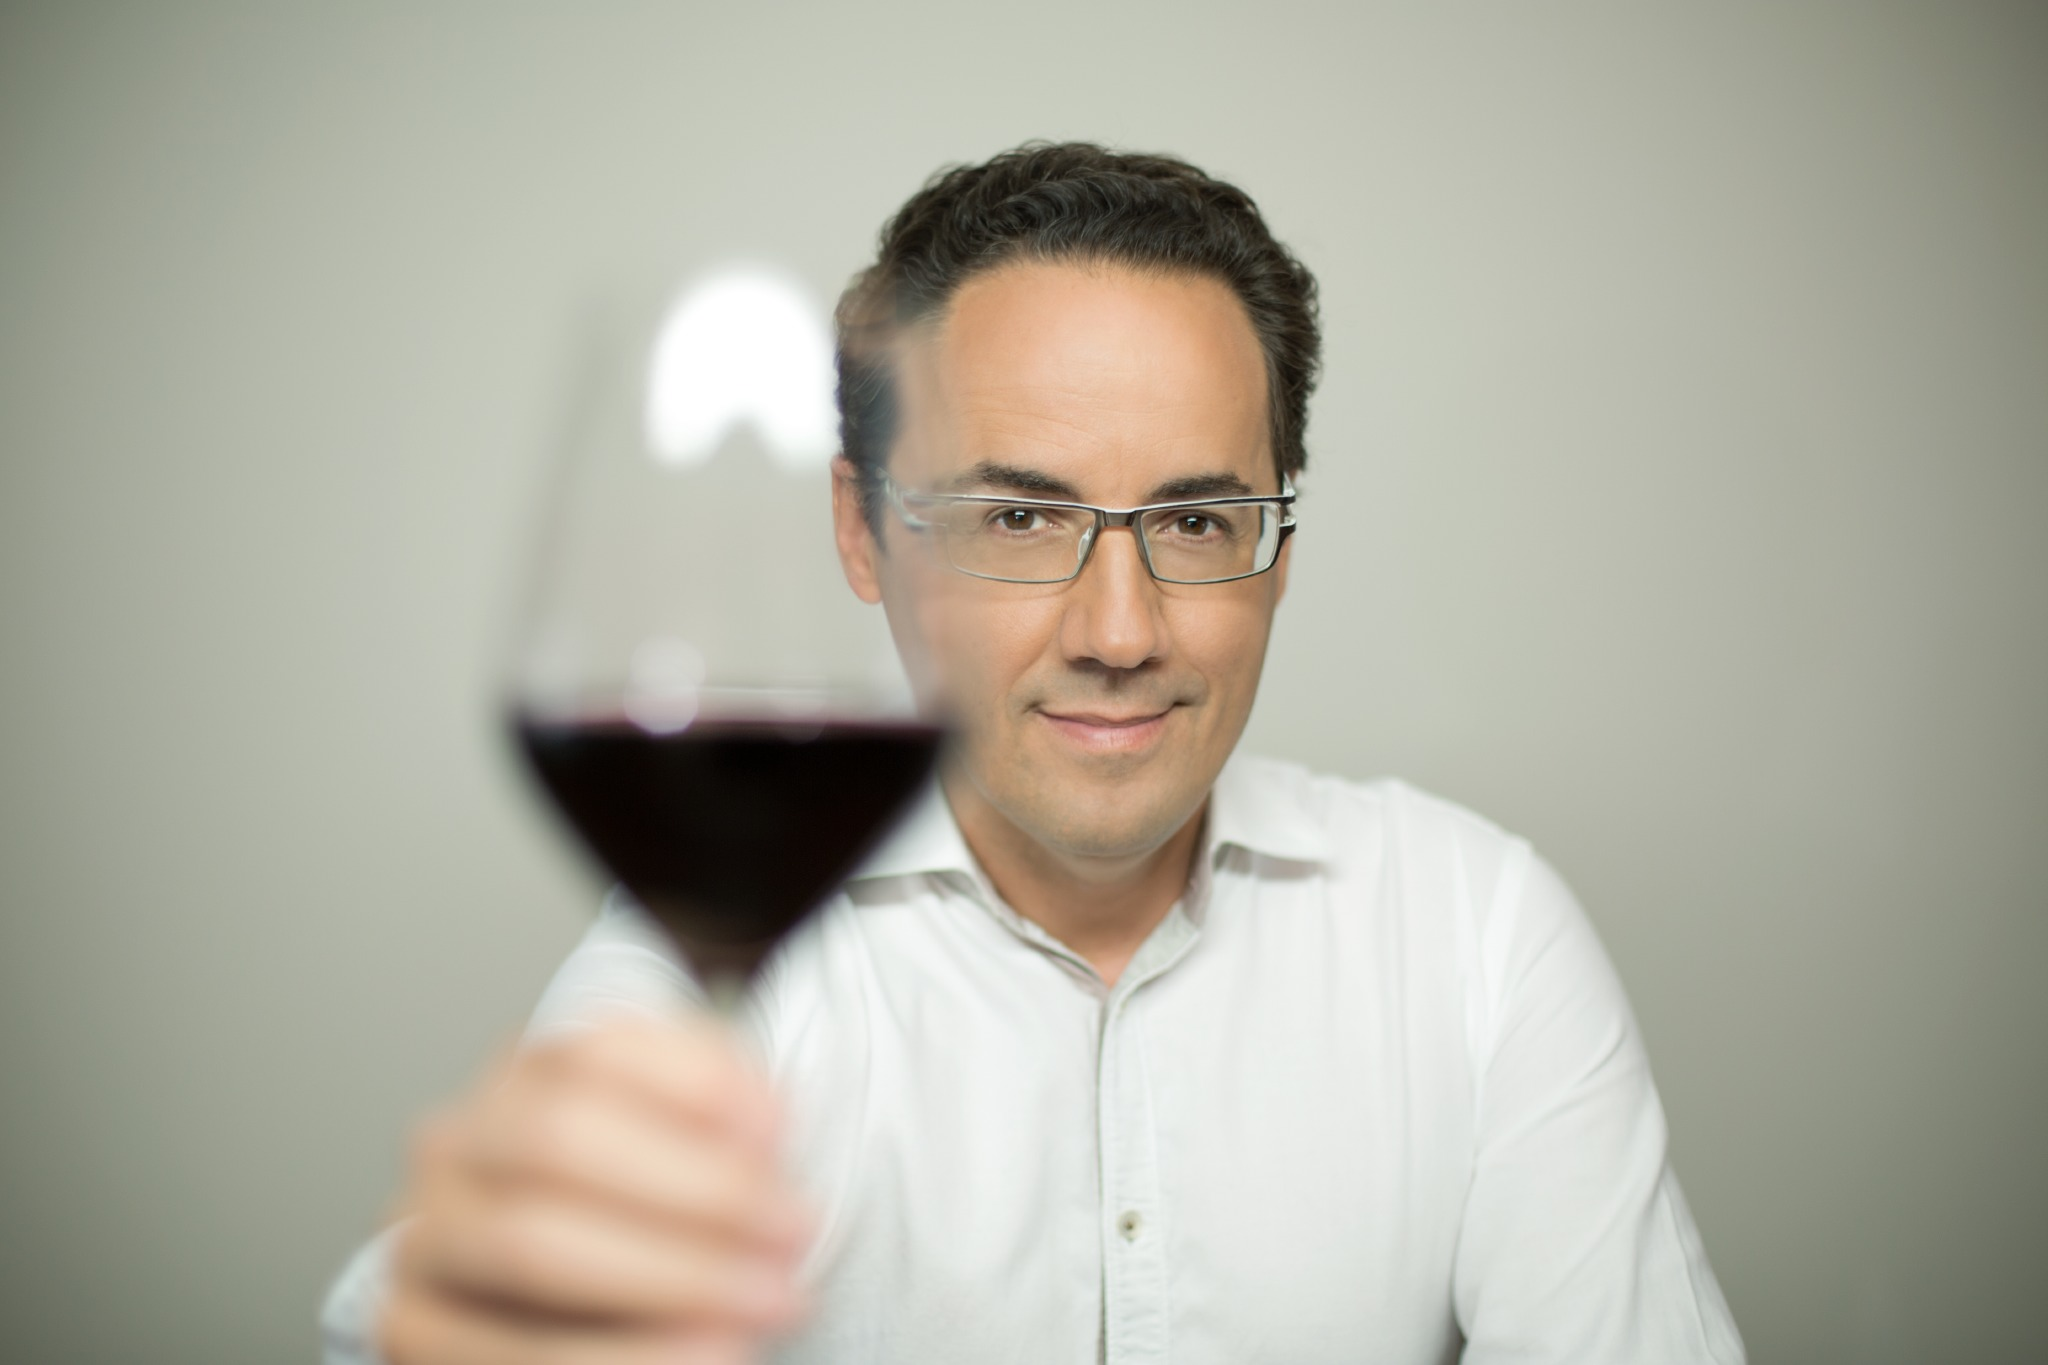 Quebec sommelier brings science to his wine and food pairings